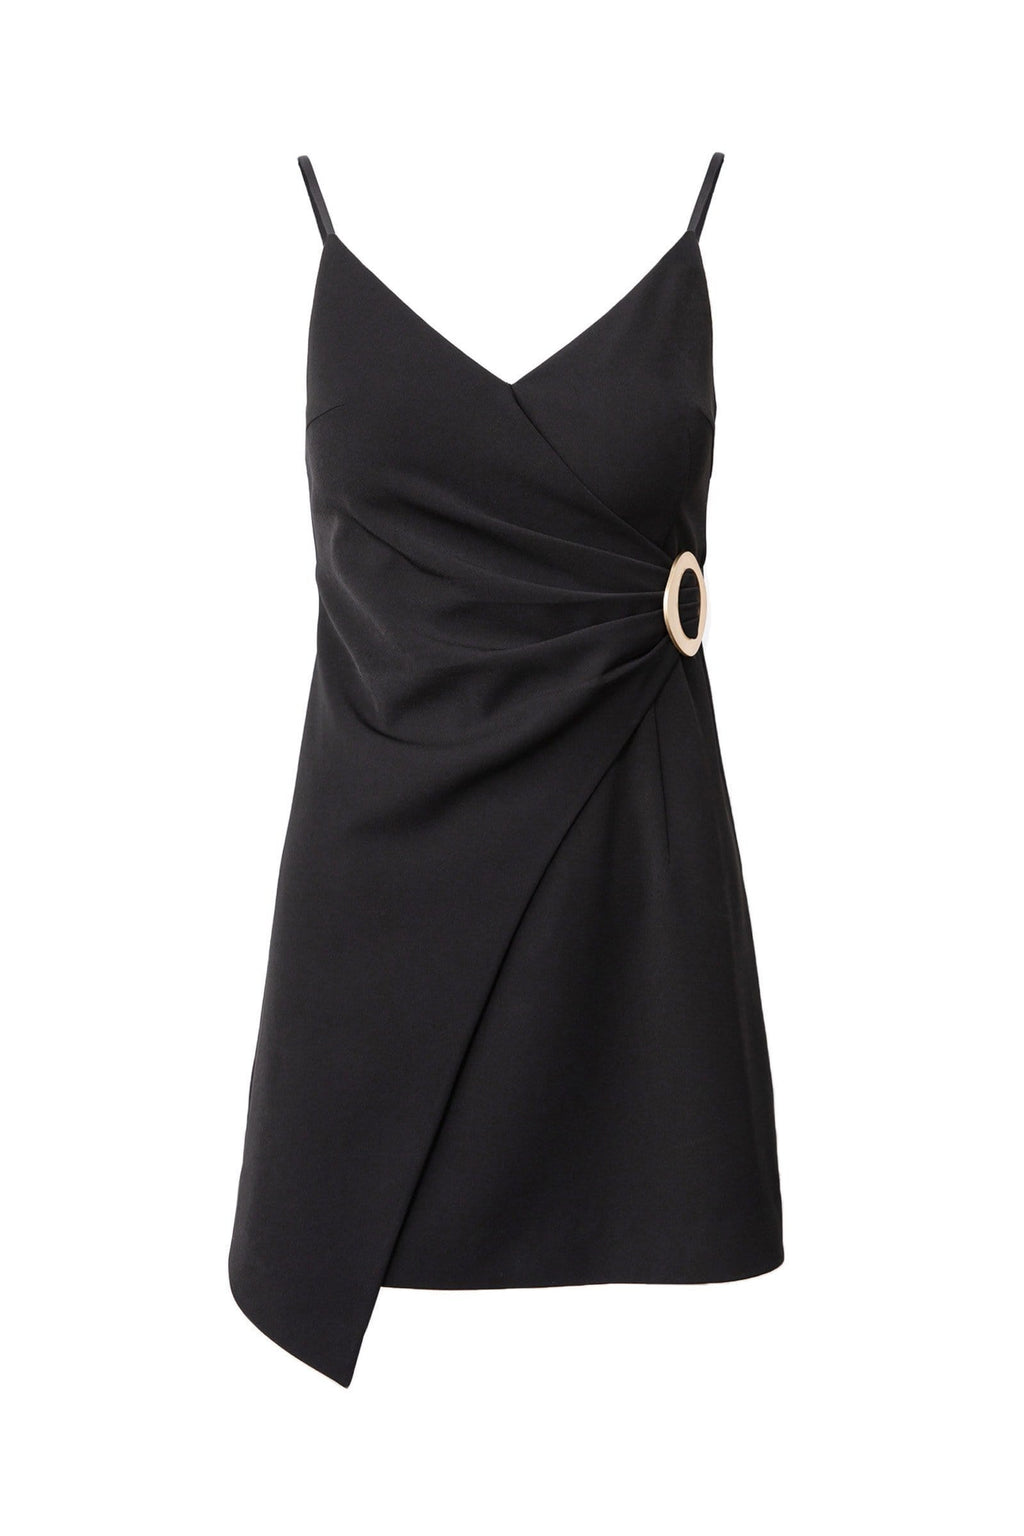 Lil' Black Dress by J.ING Women's Clothing